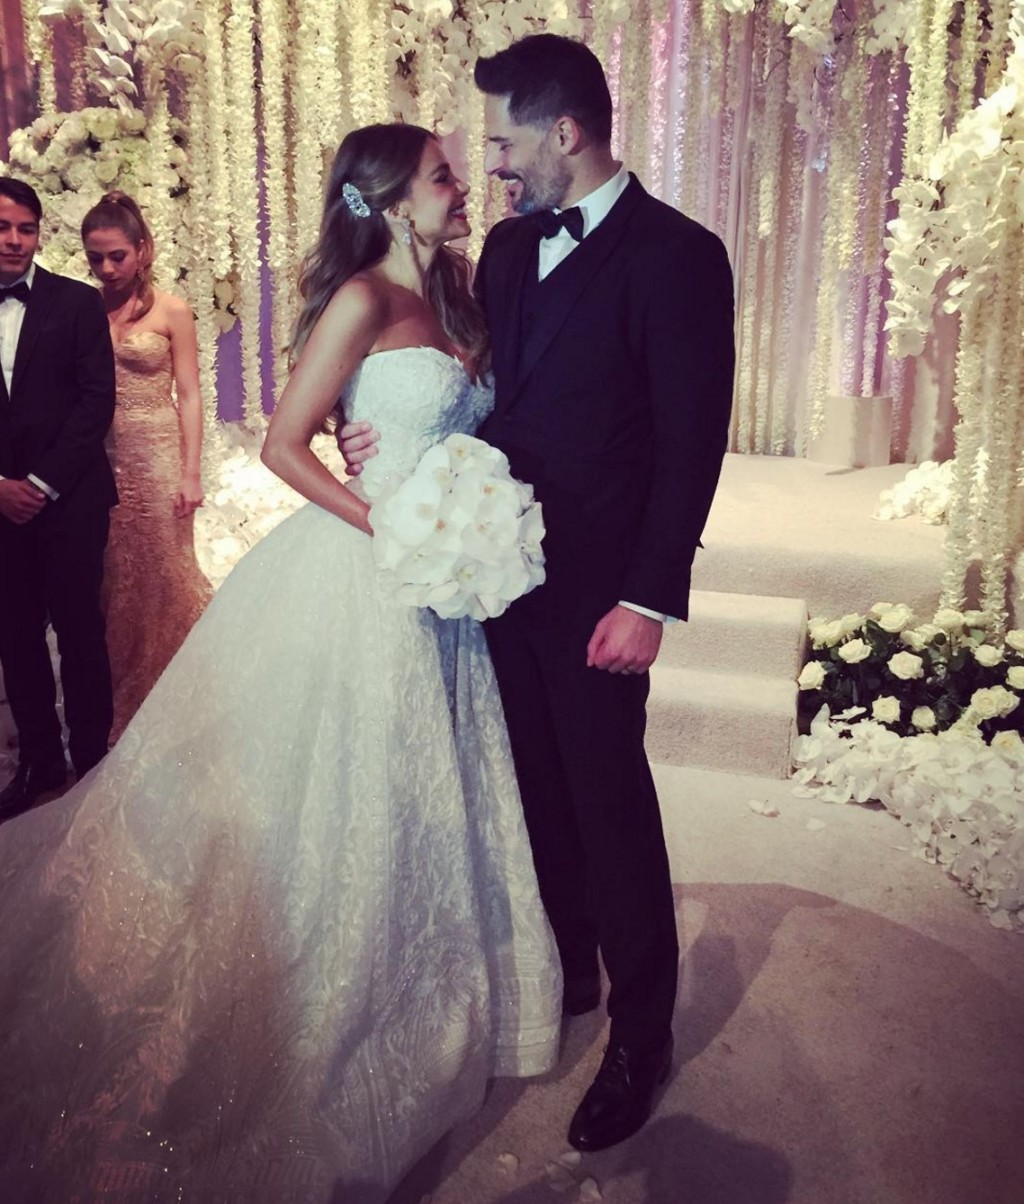 Sofia Vergara Gets Married in a Zuhair Murad Wedding Dress